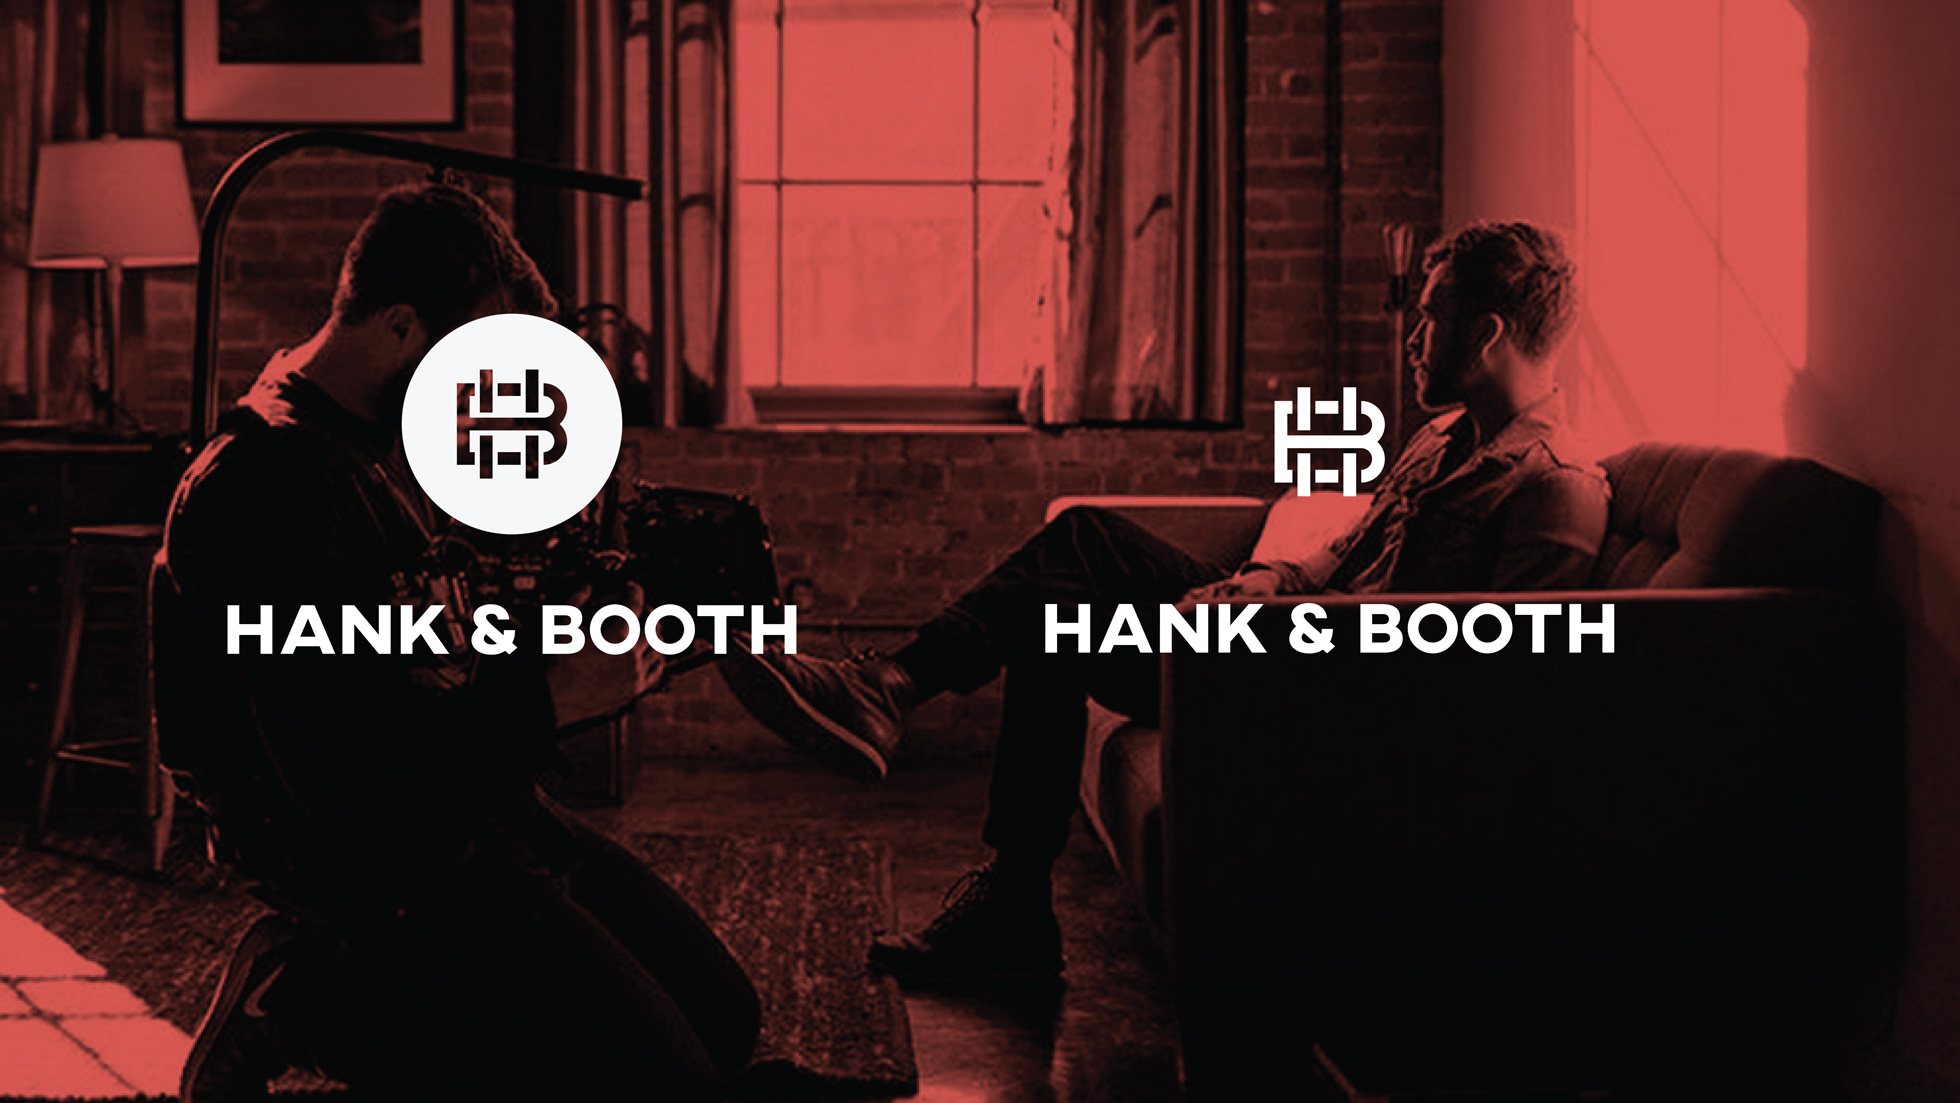 hank-and-booth-1.jpg